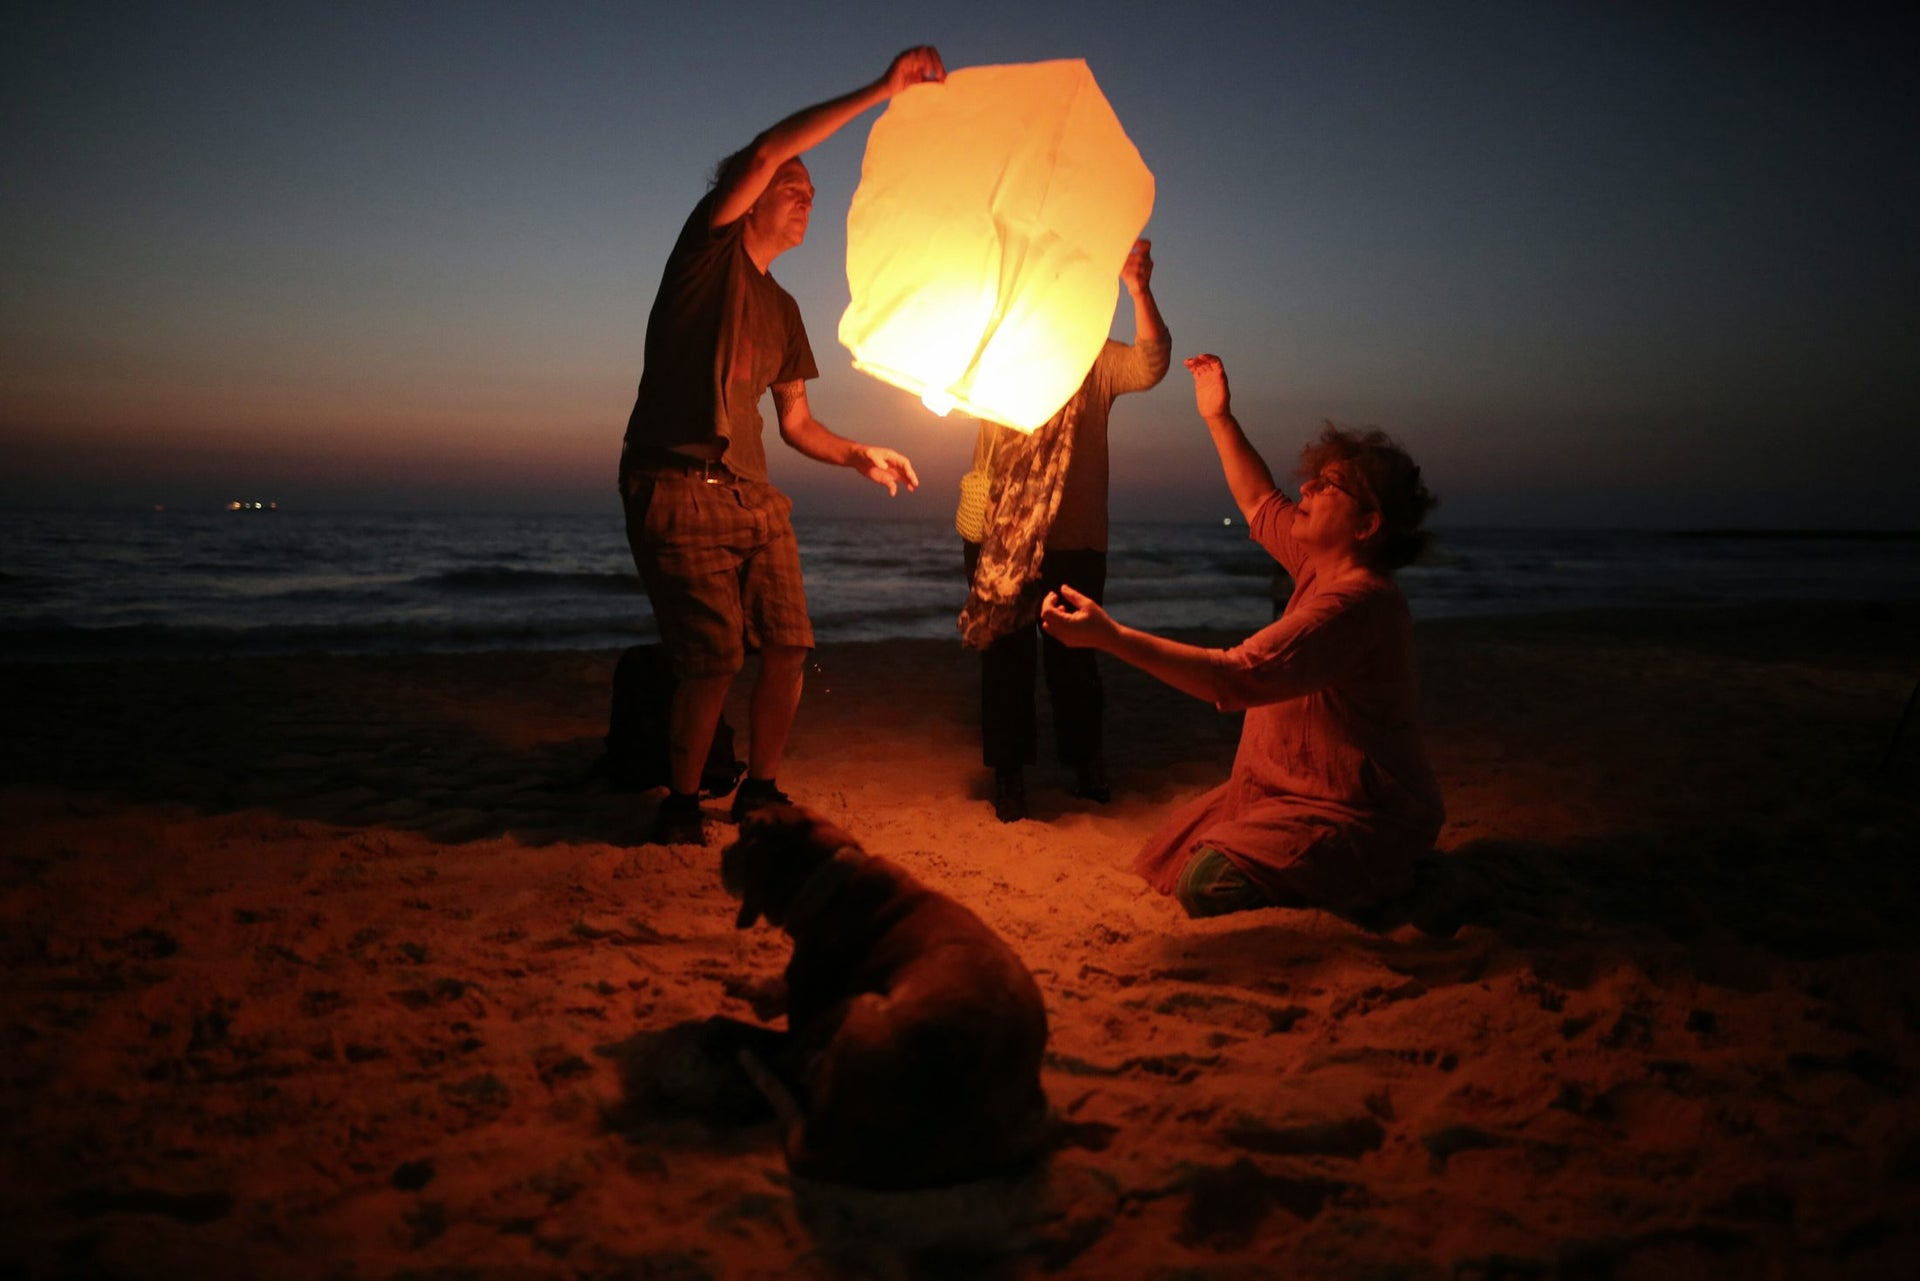 Israeli peace activists release a sky lantern, hoping to illuminate the sky in Gaza, as they protest Israel's reduction of power supply to Gaza at a beach in Ashkelon, June 19, 2017.